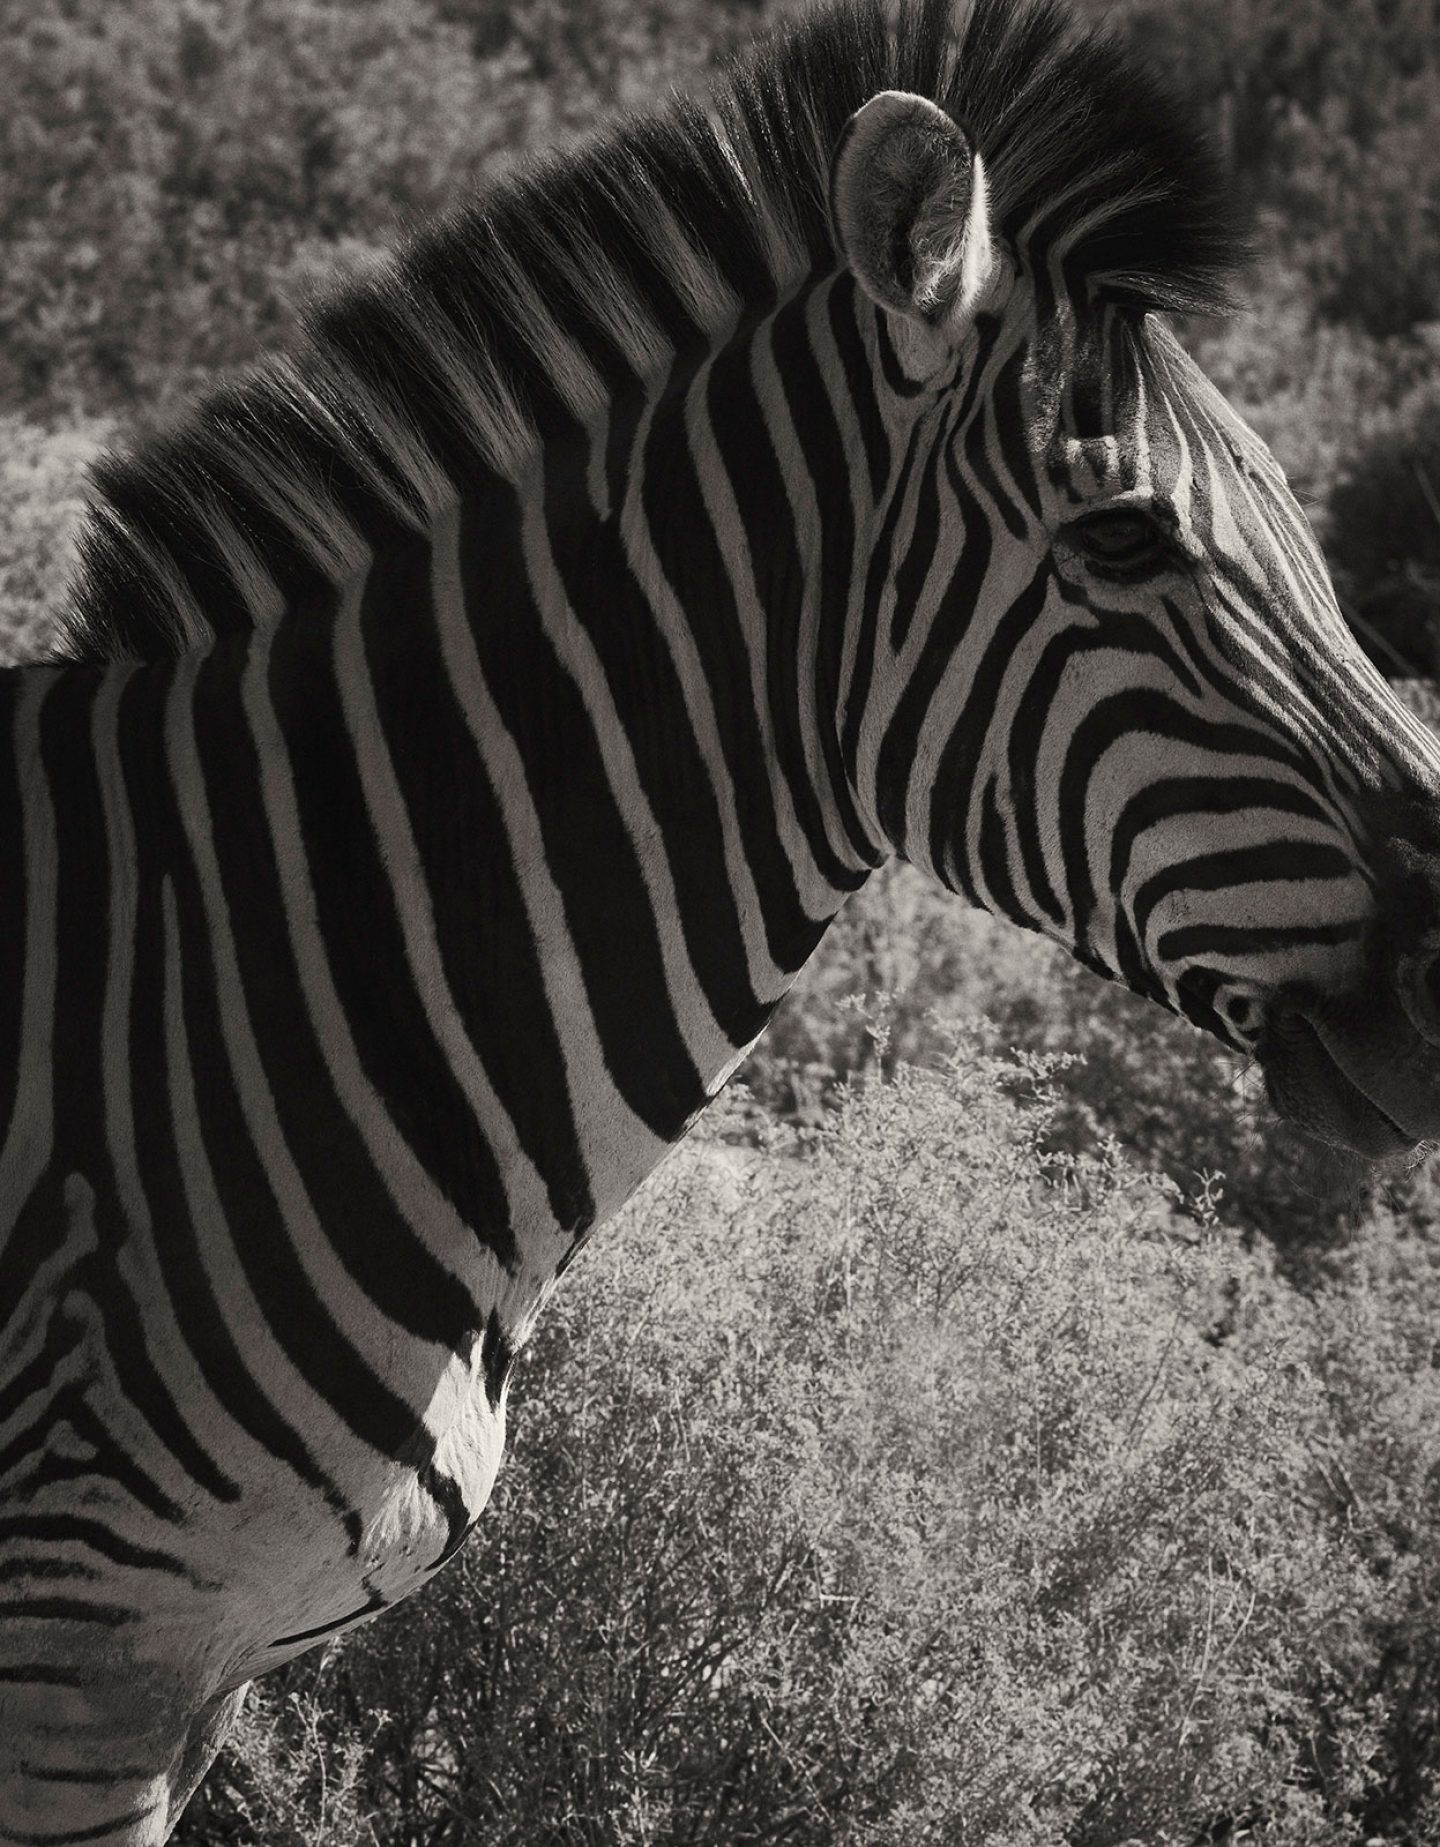 IGNANT-Photography-Laura-Palm-Zebra-1